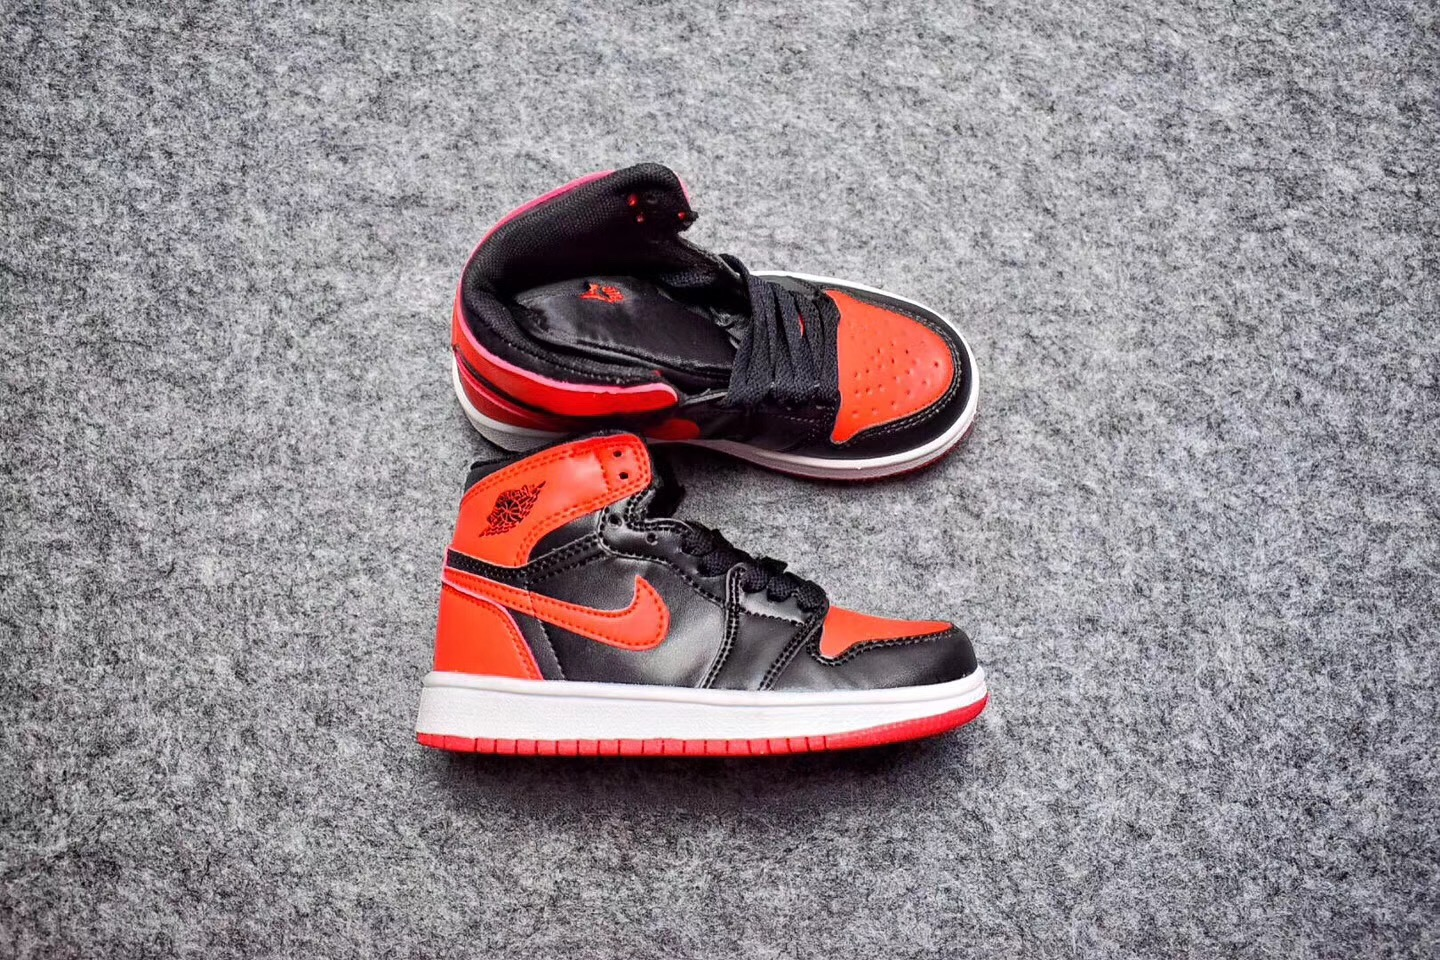 competitive price df82e cd275 Air Jordan 1 Retro 'Banned' Black Red For Kids Online